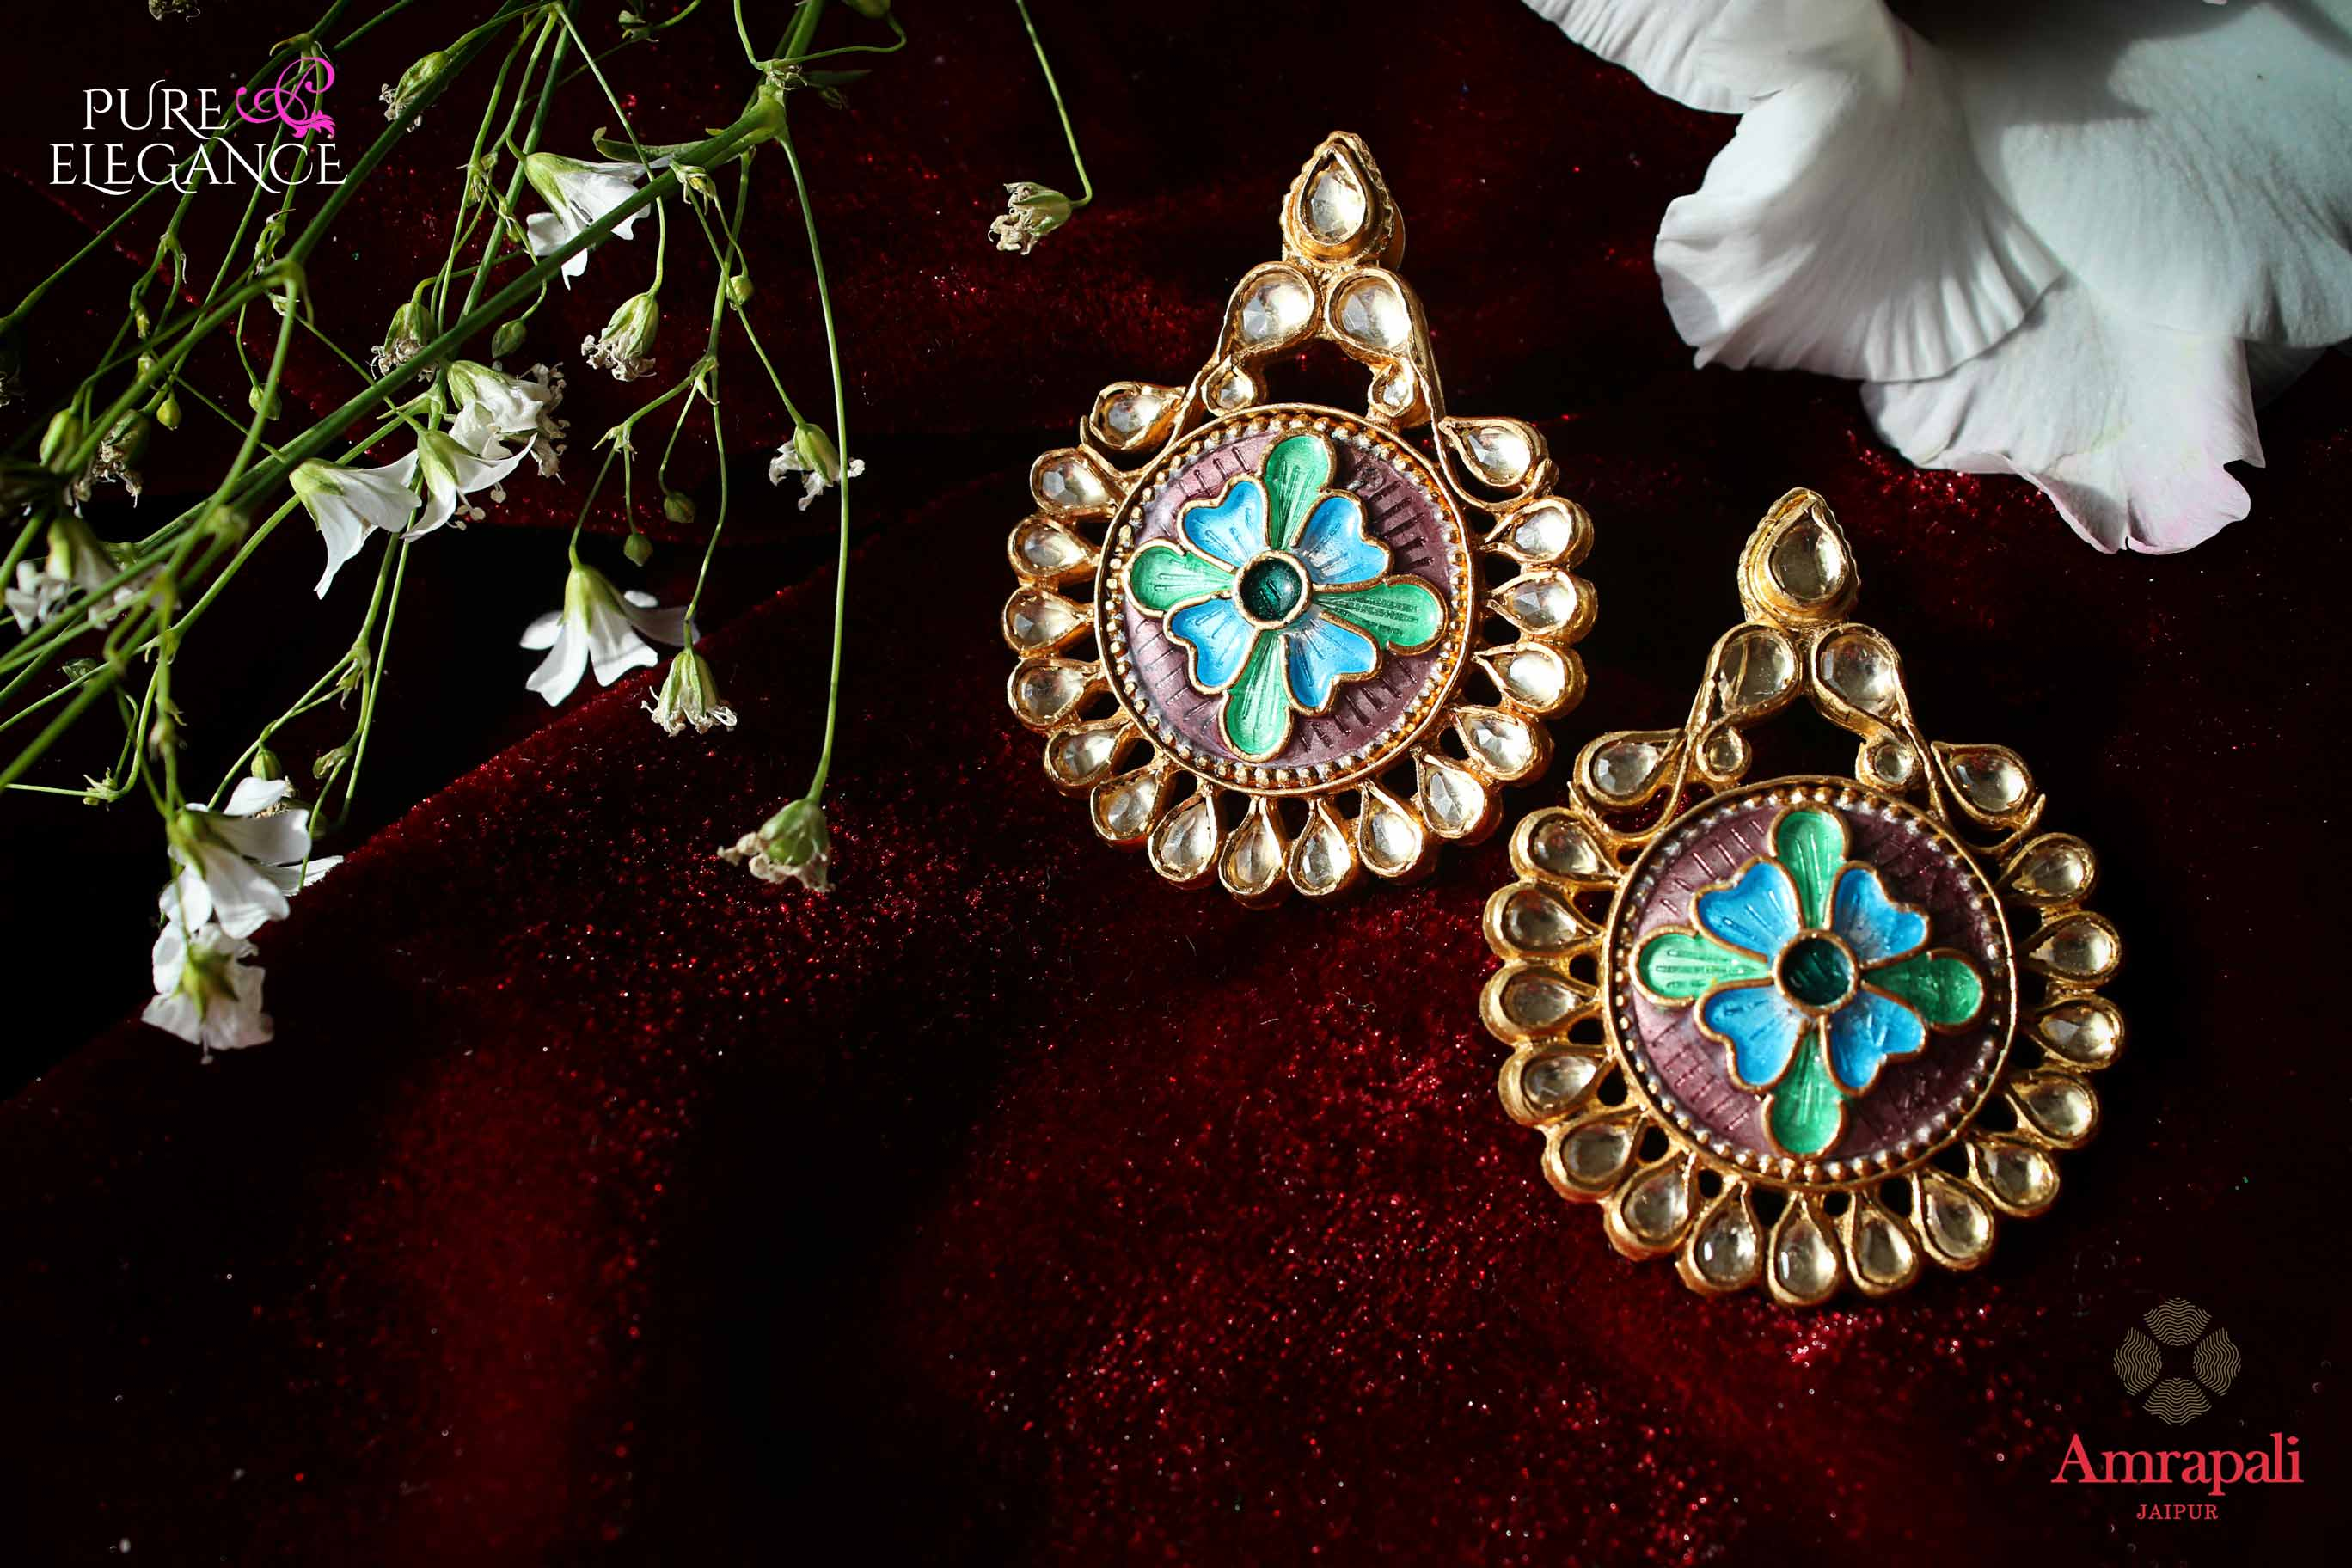 Buy beautiful silver gold plated enamel floral glass earrings online in USA. Bring out the best in your ethnic look with traditional Indian jewelry by Amrapali available at Pure Elegance fashion store in USA. We have a stunning variety of Indian silver gold plated jewellery also available at our online store. Shop now.-full view